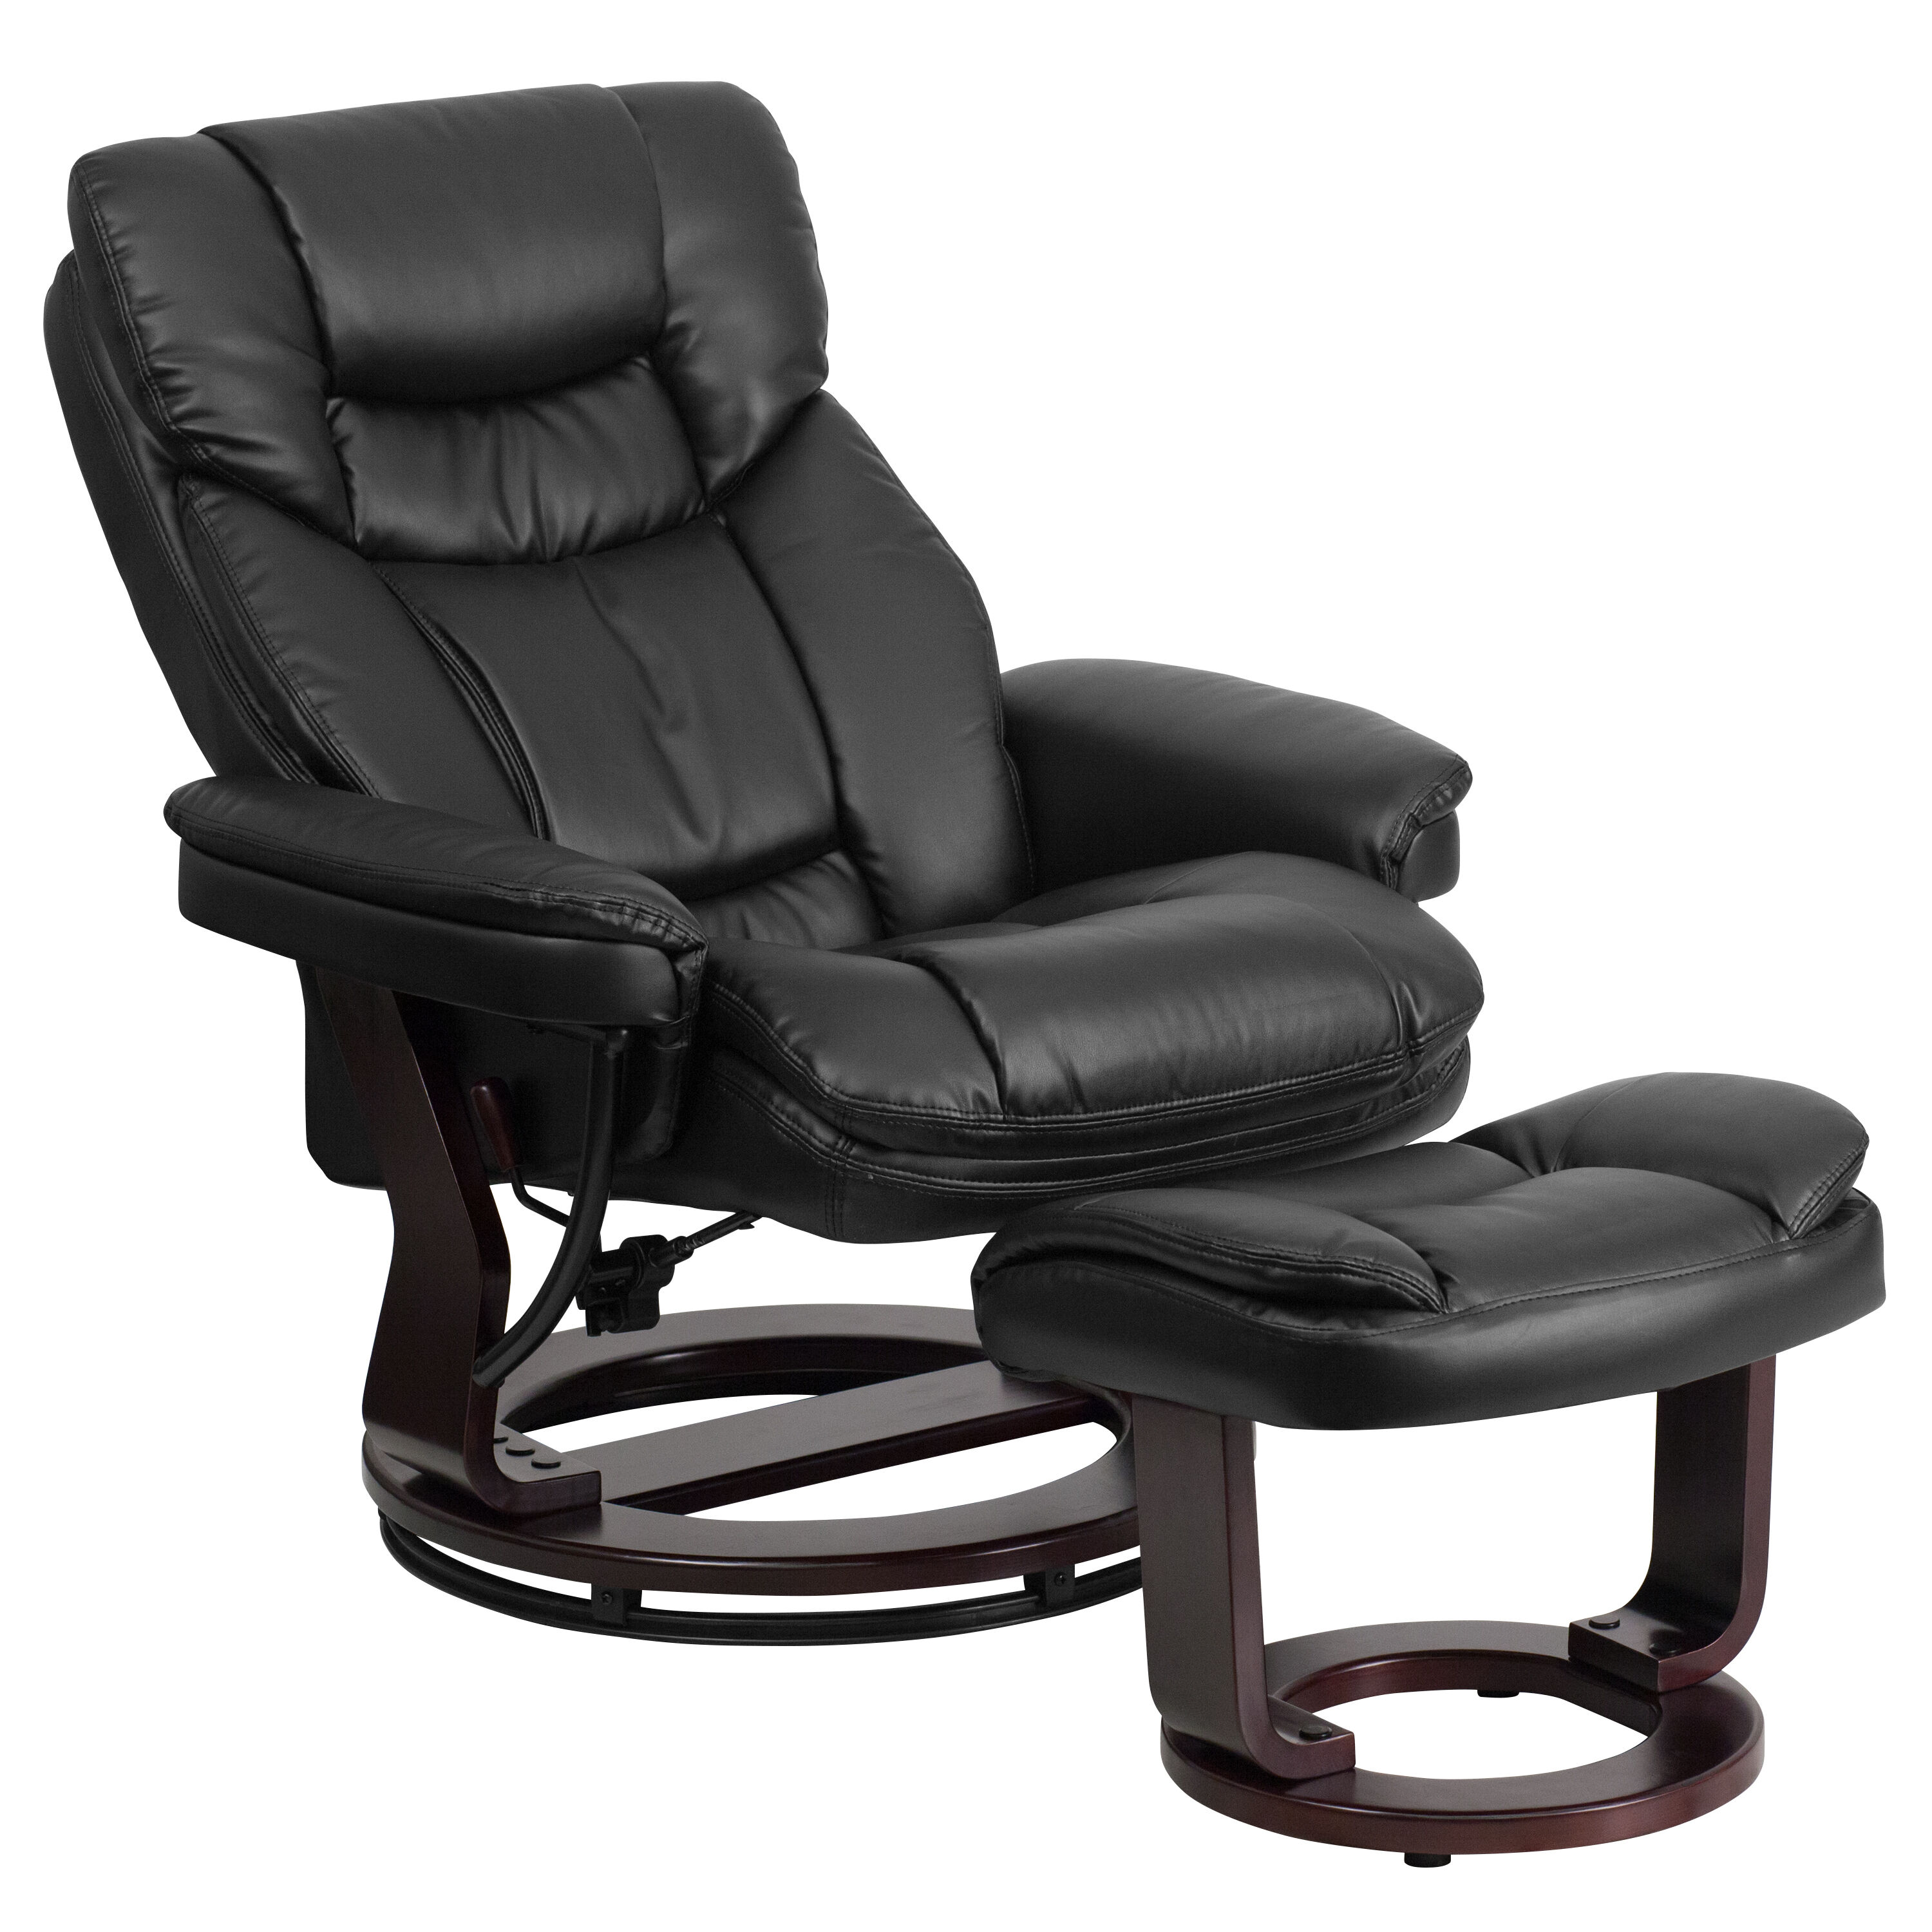 recliner vs chair with ottoman eames office chairs black leather bt 7821 bk gg bizchair com